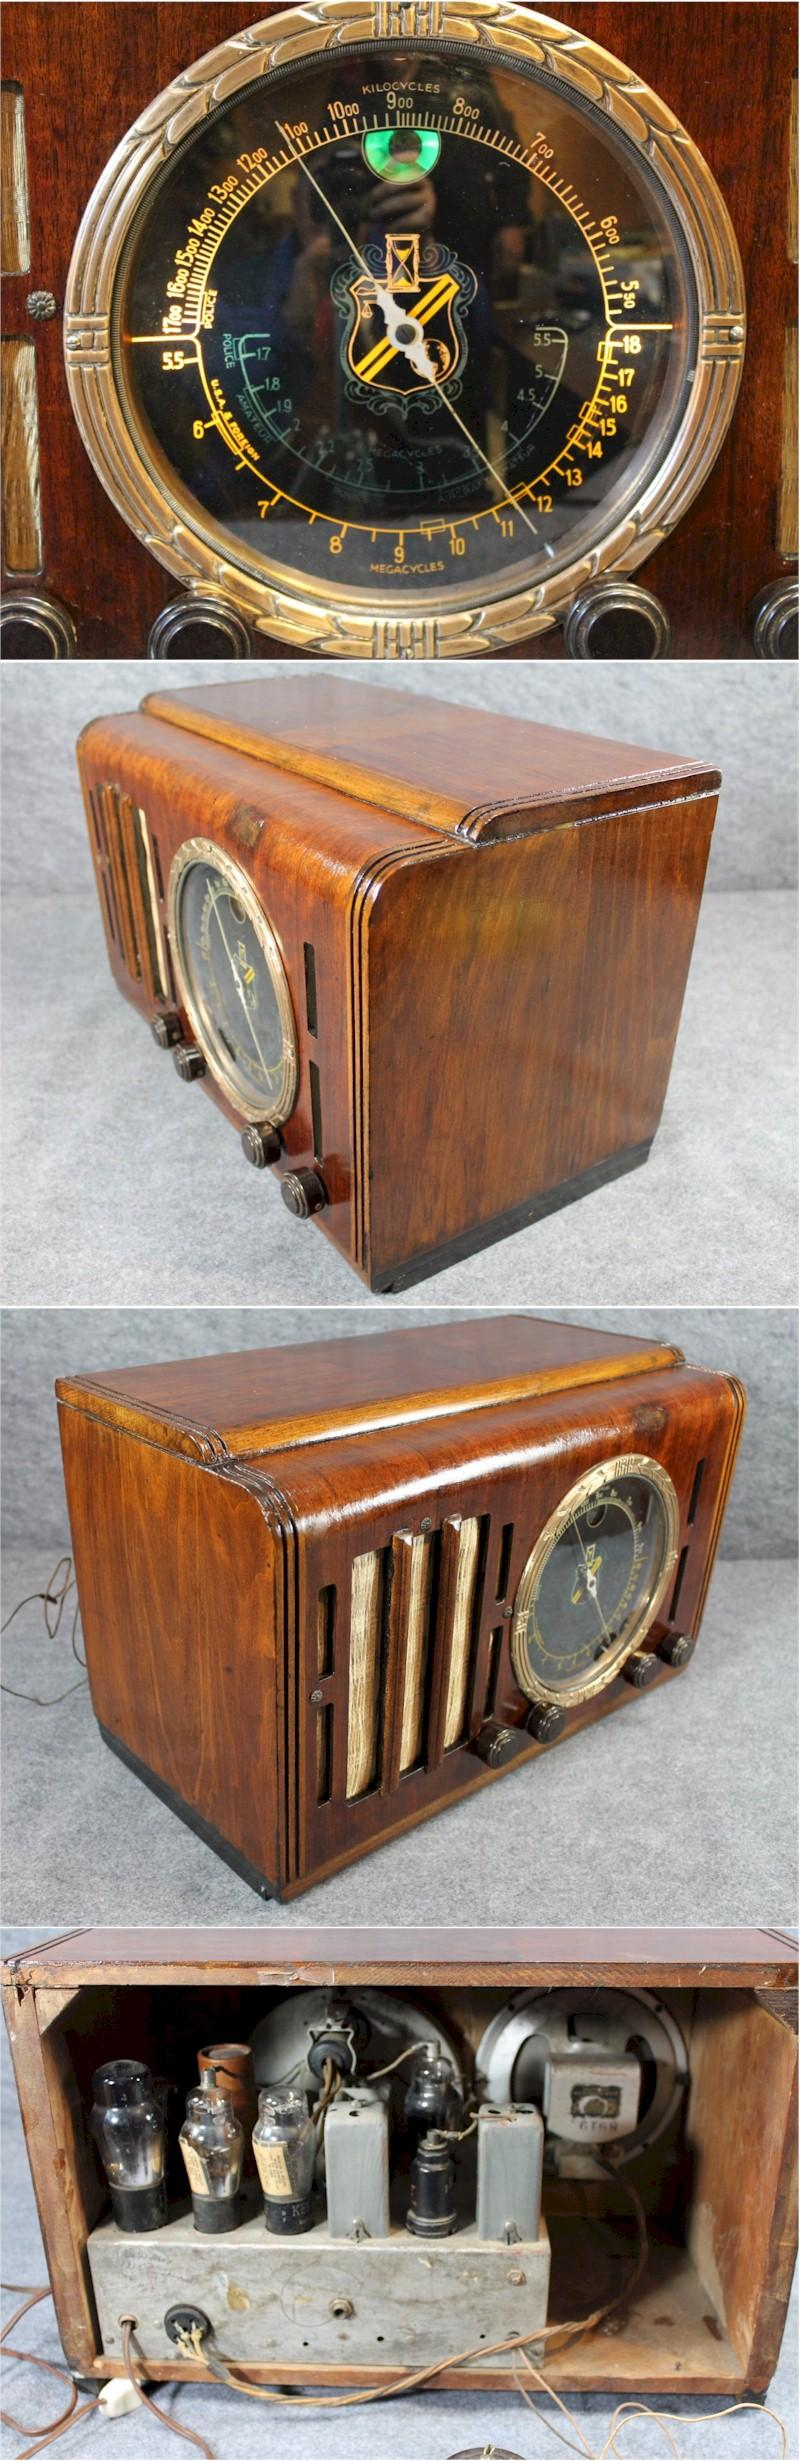 Unknown Big Dial Table Radio